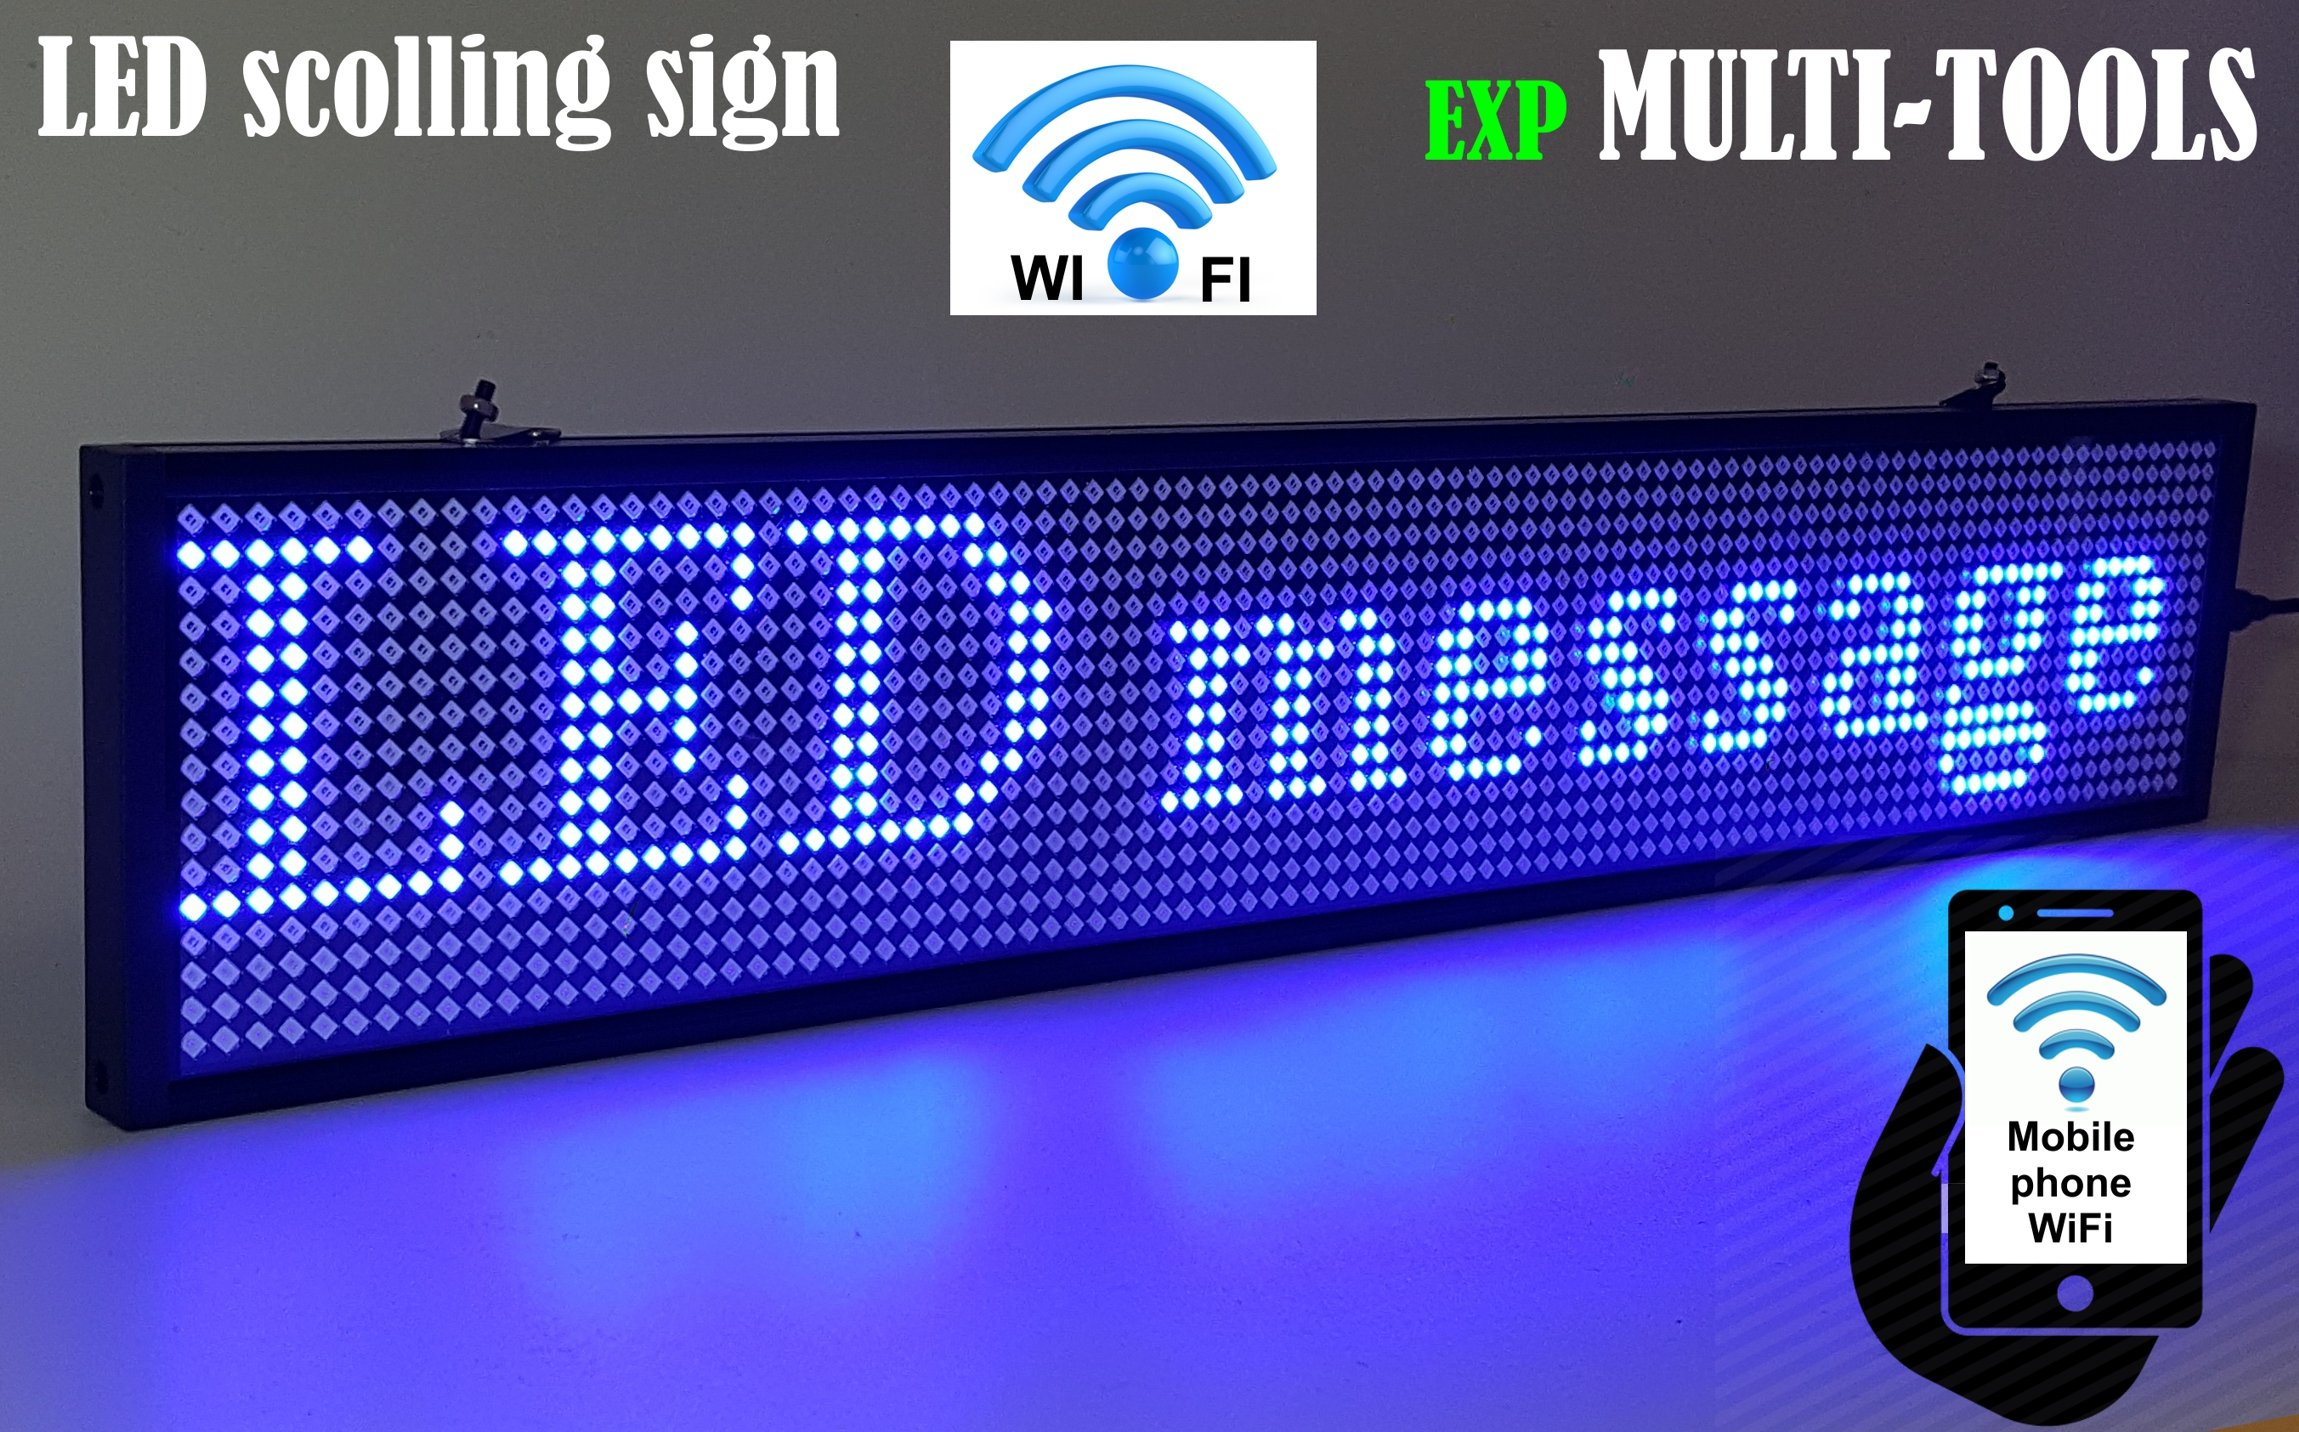 LED Display Blue Color with WiFi Connection, LED Scrolling Message Sign, Bright and in New Light auminum housing